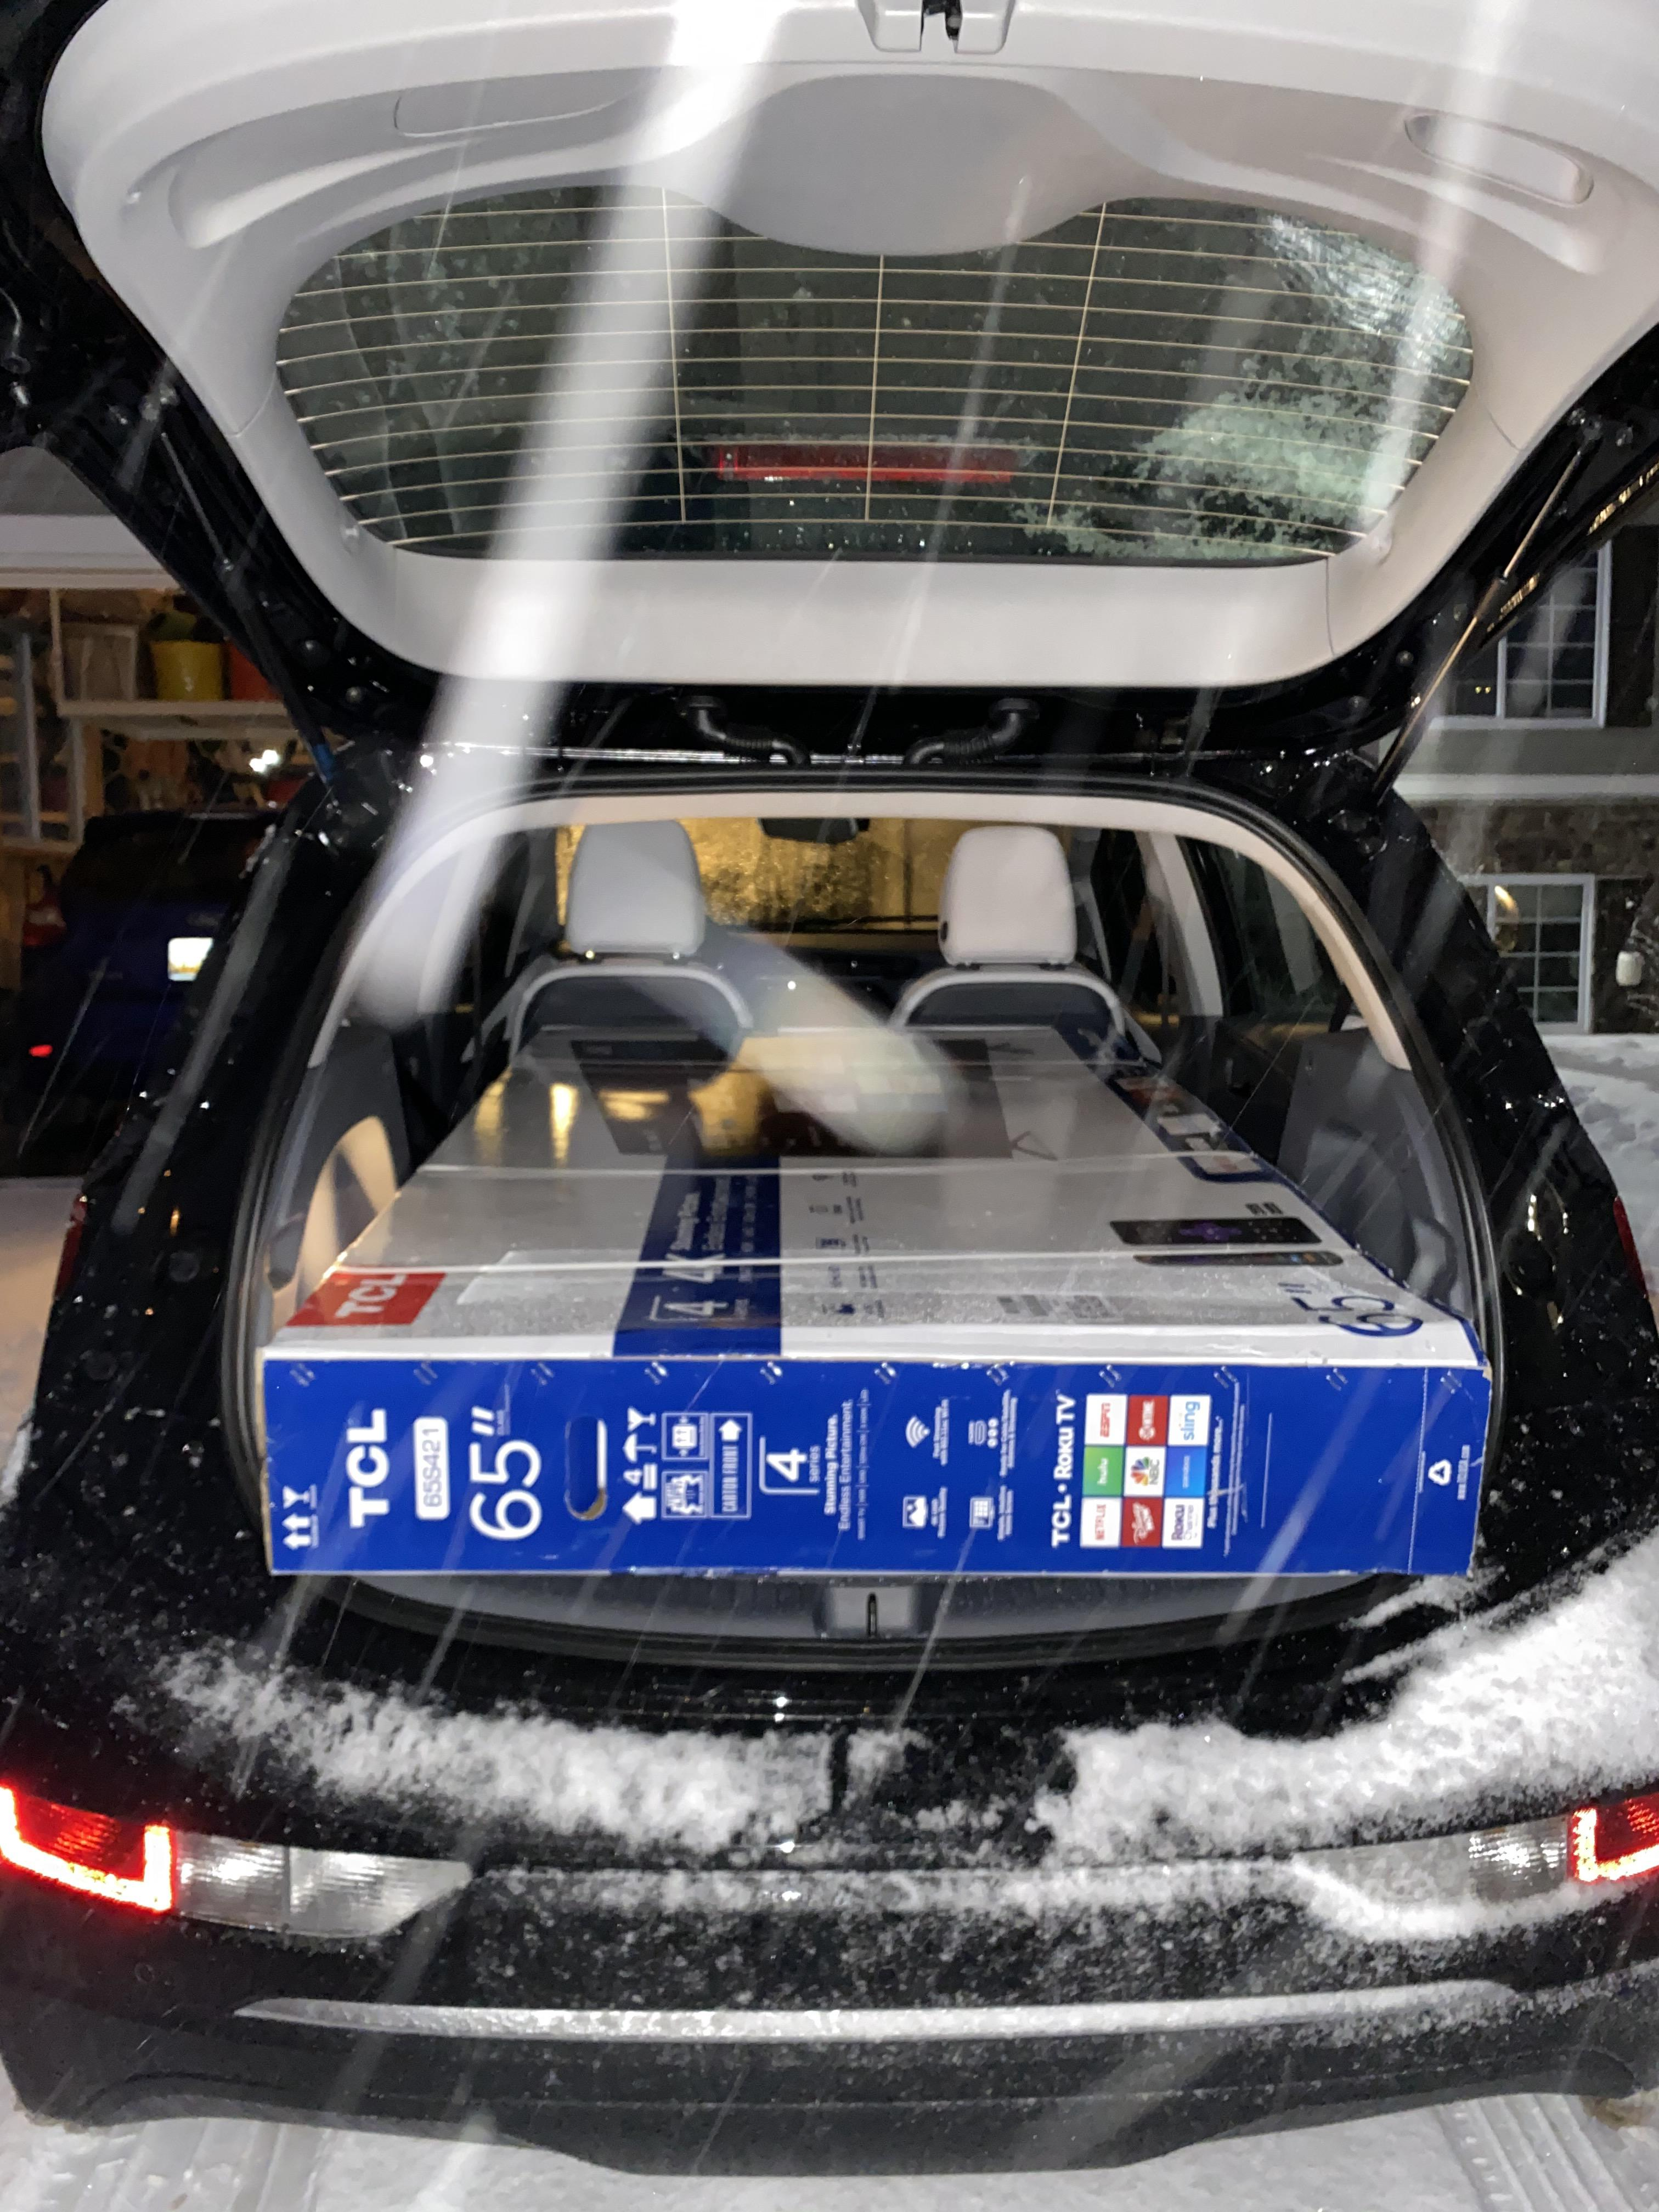 """Will A 65 Tv Fit In A Car : Confirmed-, 65"""", Successfully, Transported, Home., Hatch, Didn't, Completely, Shut,, Bungee, Worked, Perfect, Drive., BoltEV"""